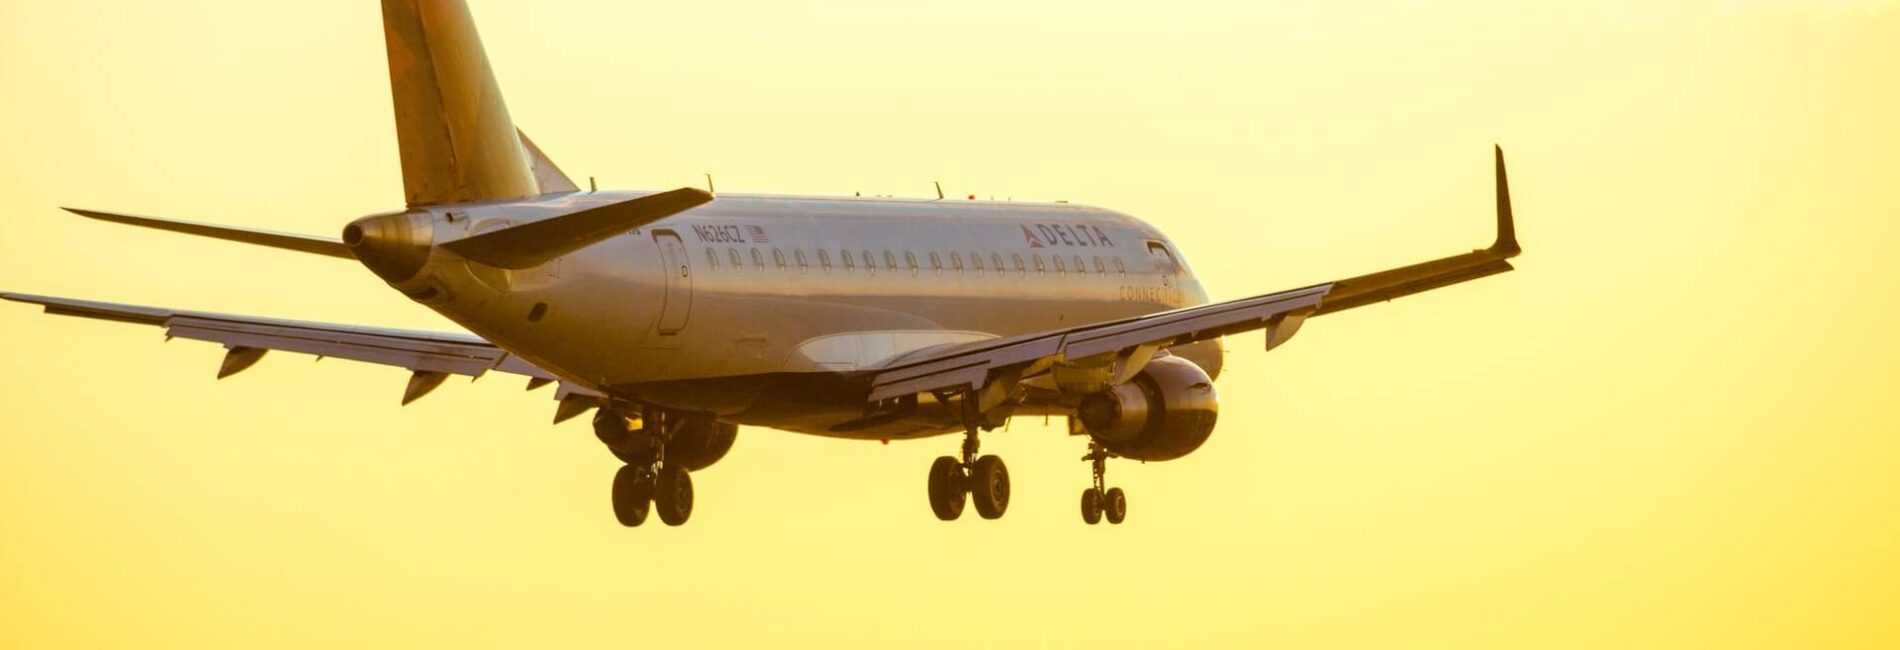 Traveling By Plane? Plan Ahead With These Tips